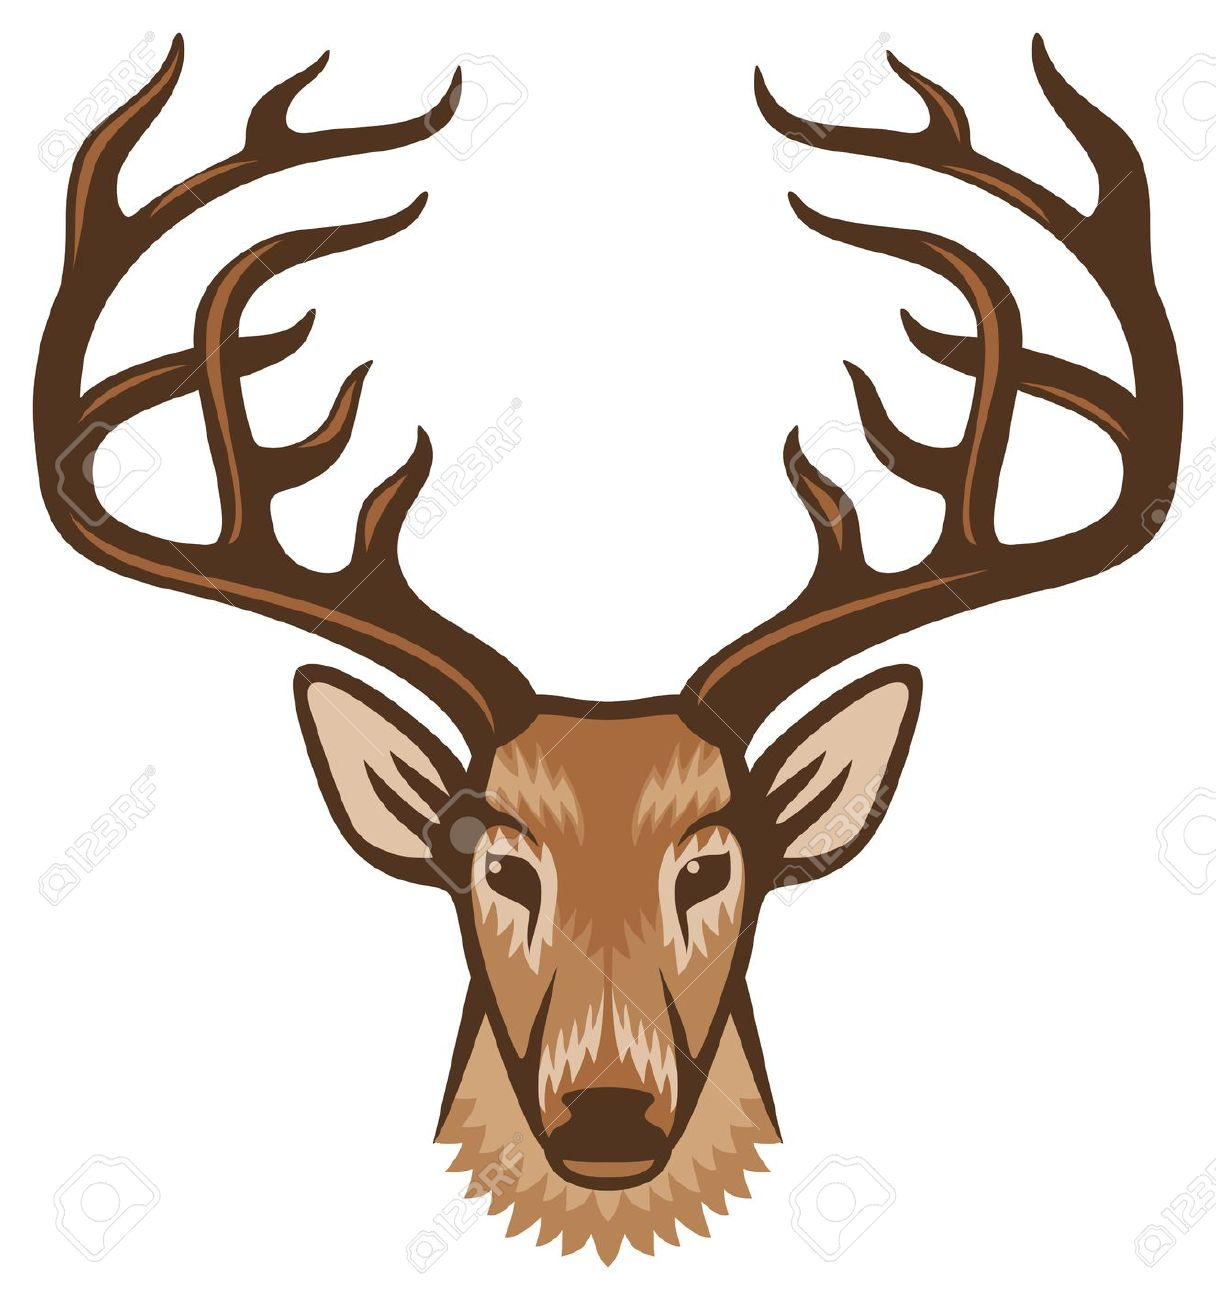 Deer face clipart - ClipartFest-Deer face clipart - ClipartFest-13